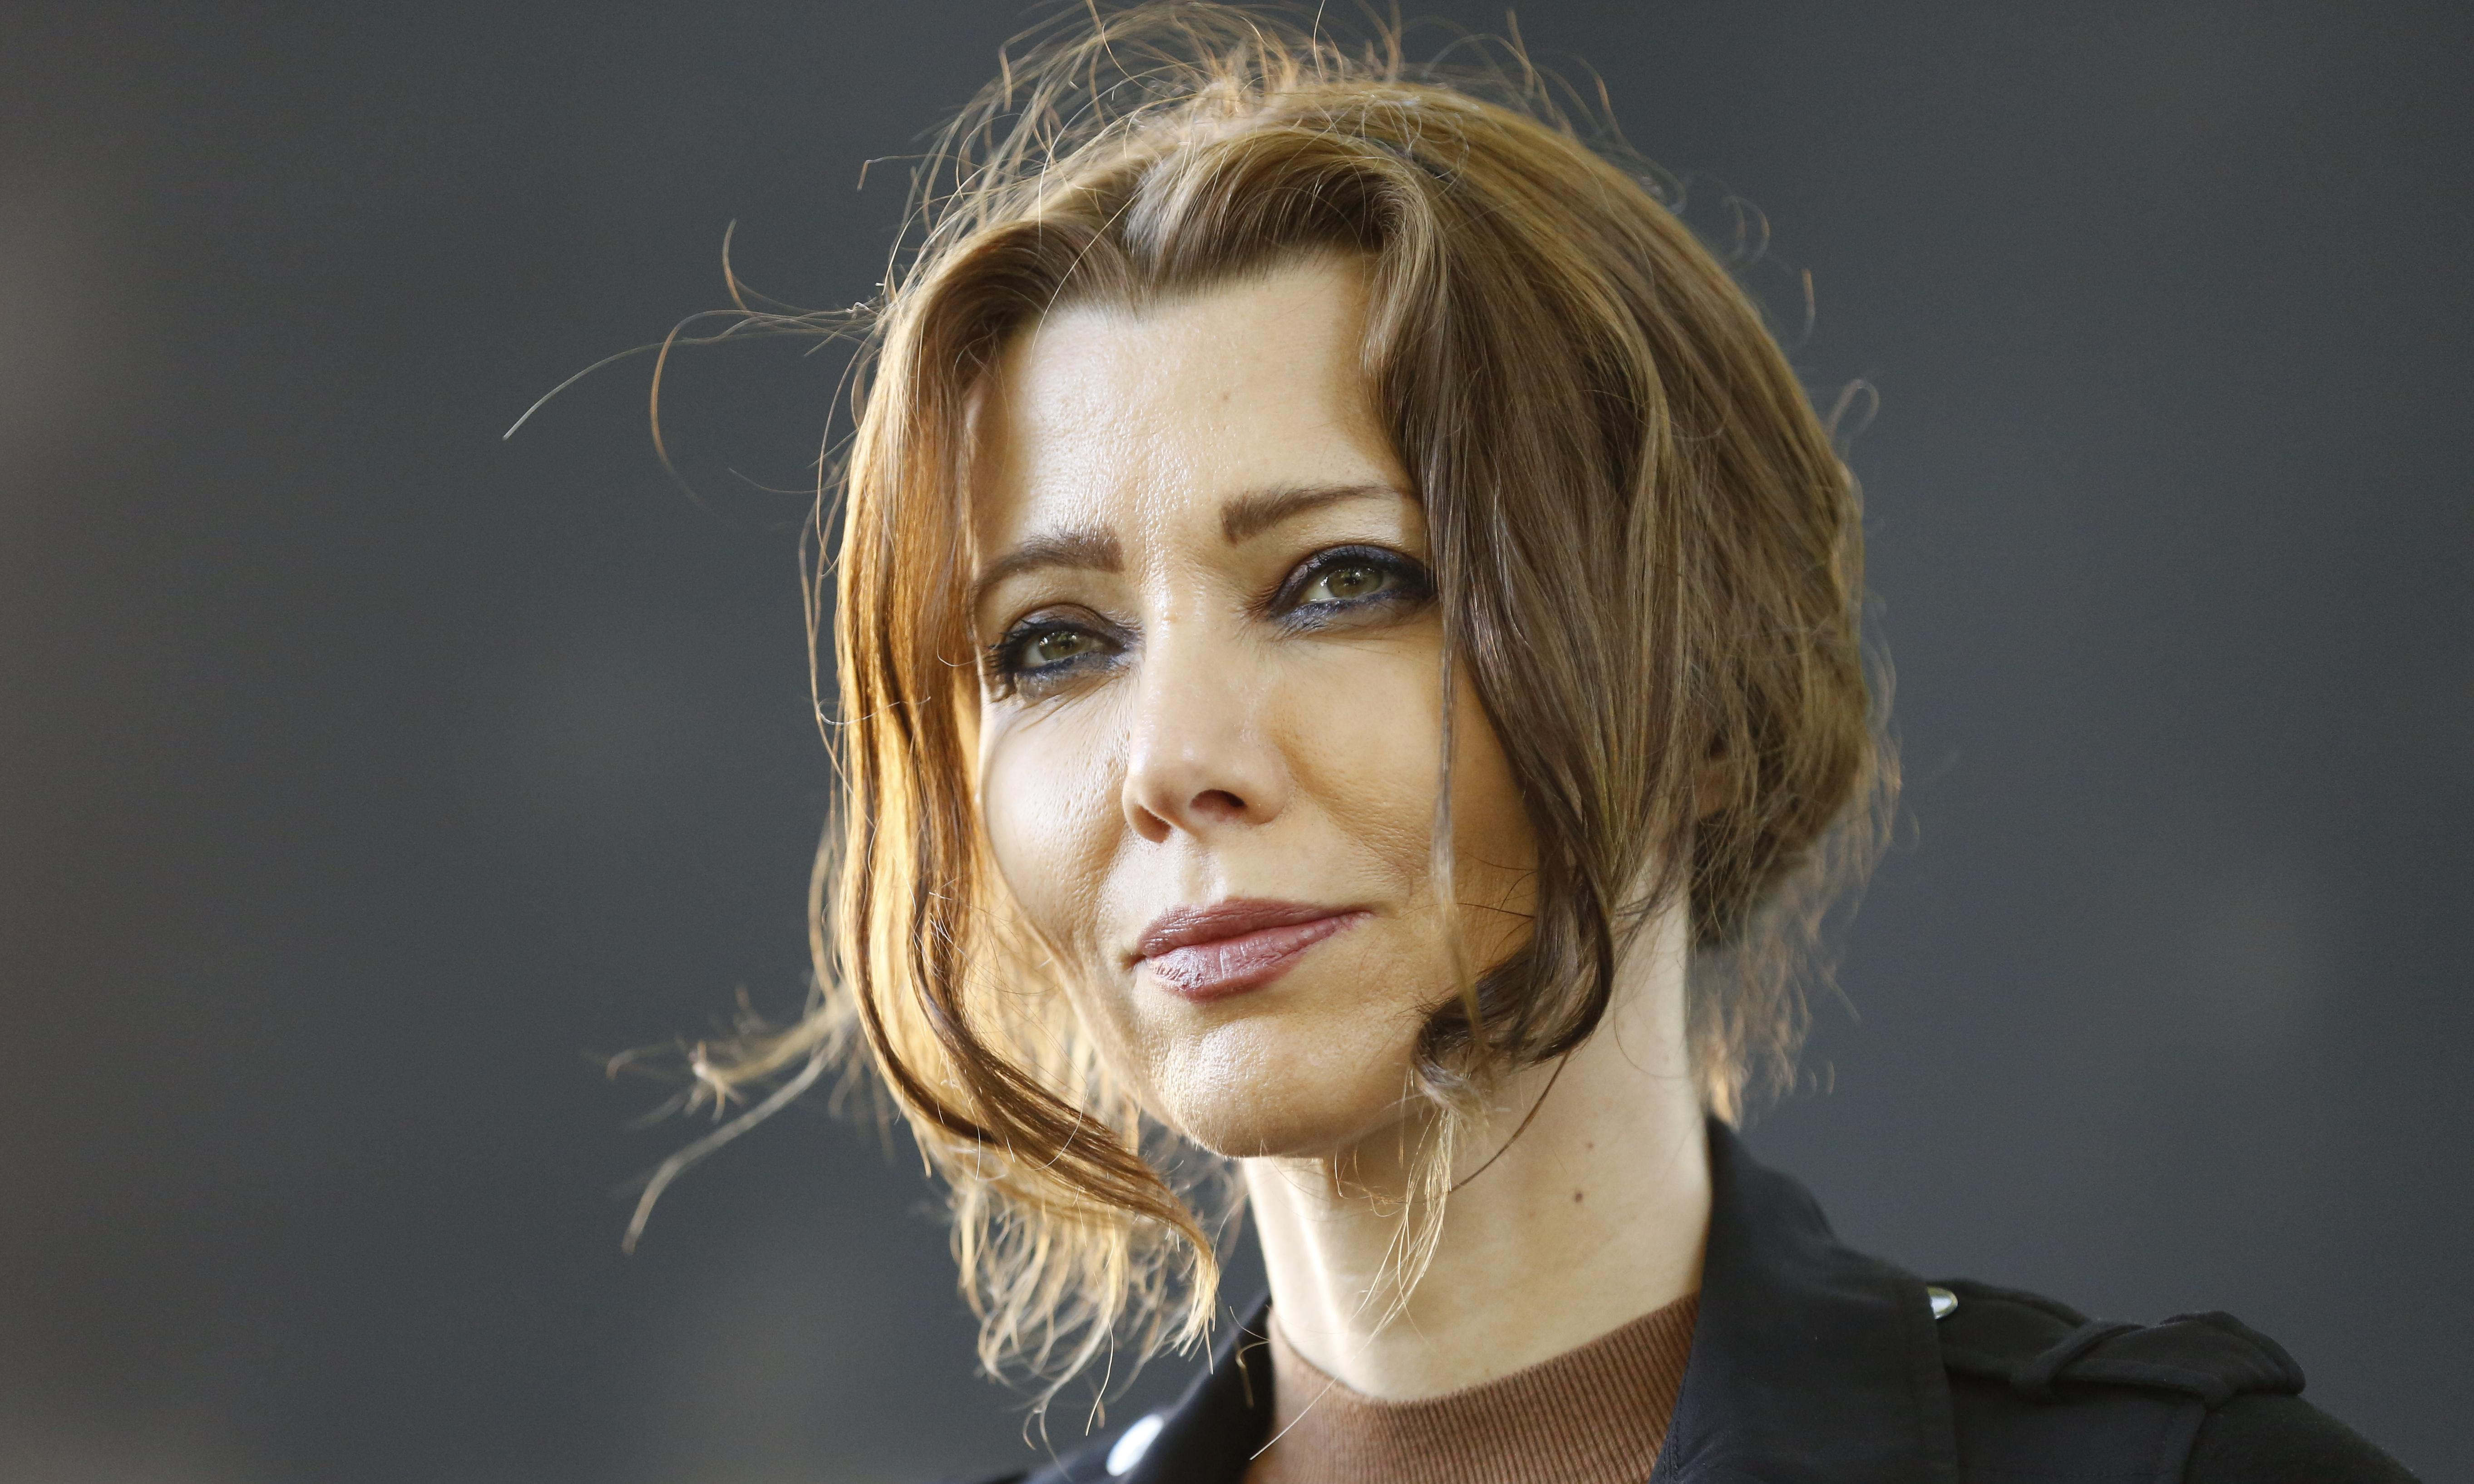 10 Minutes 38 Seconds in This Strange World by Elif Shafak review – powerful but preachy